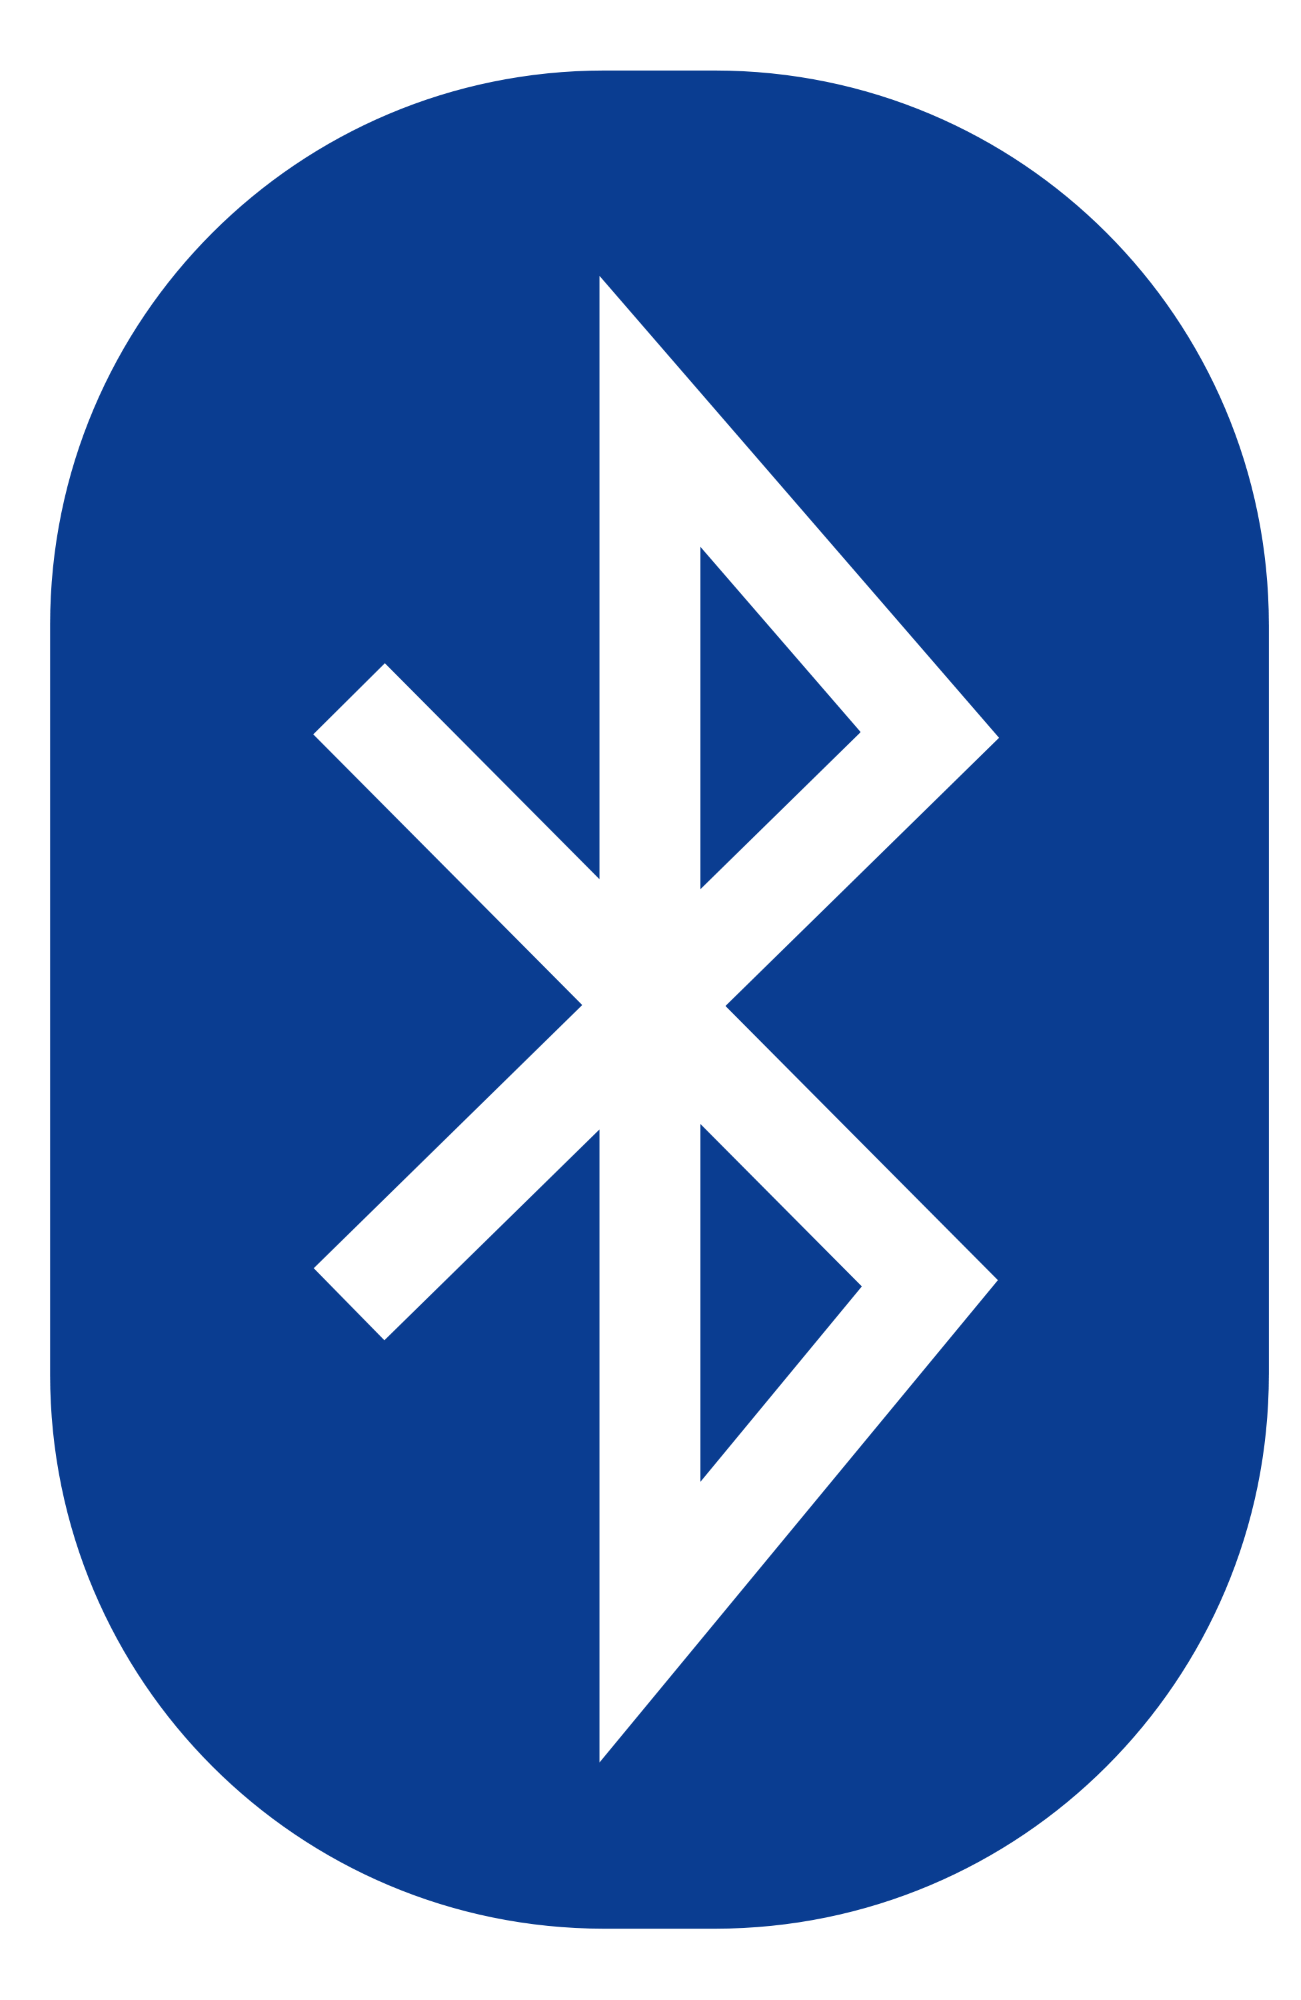 Bluetooth 5 Promises Better Range, Speed and Capacity